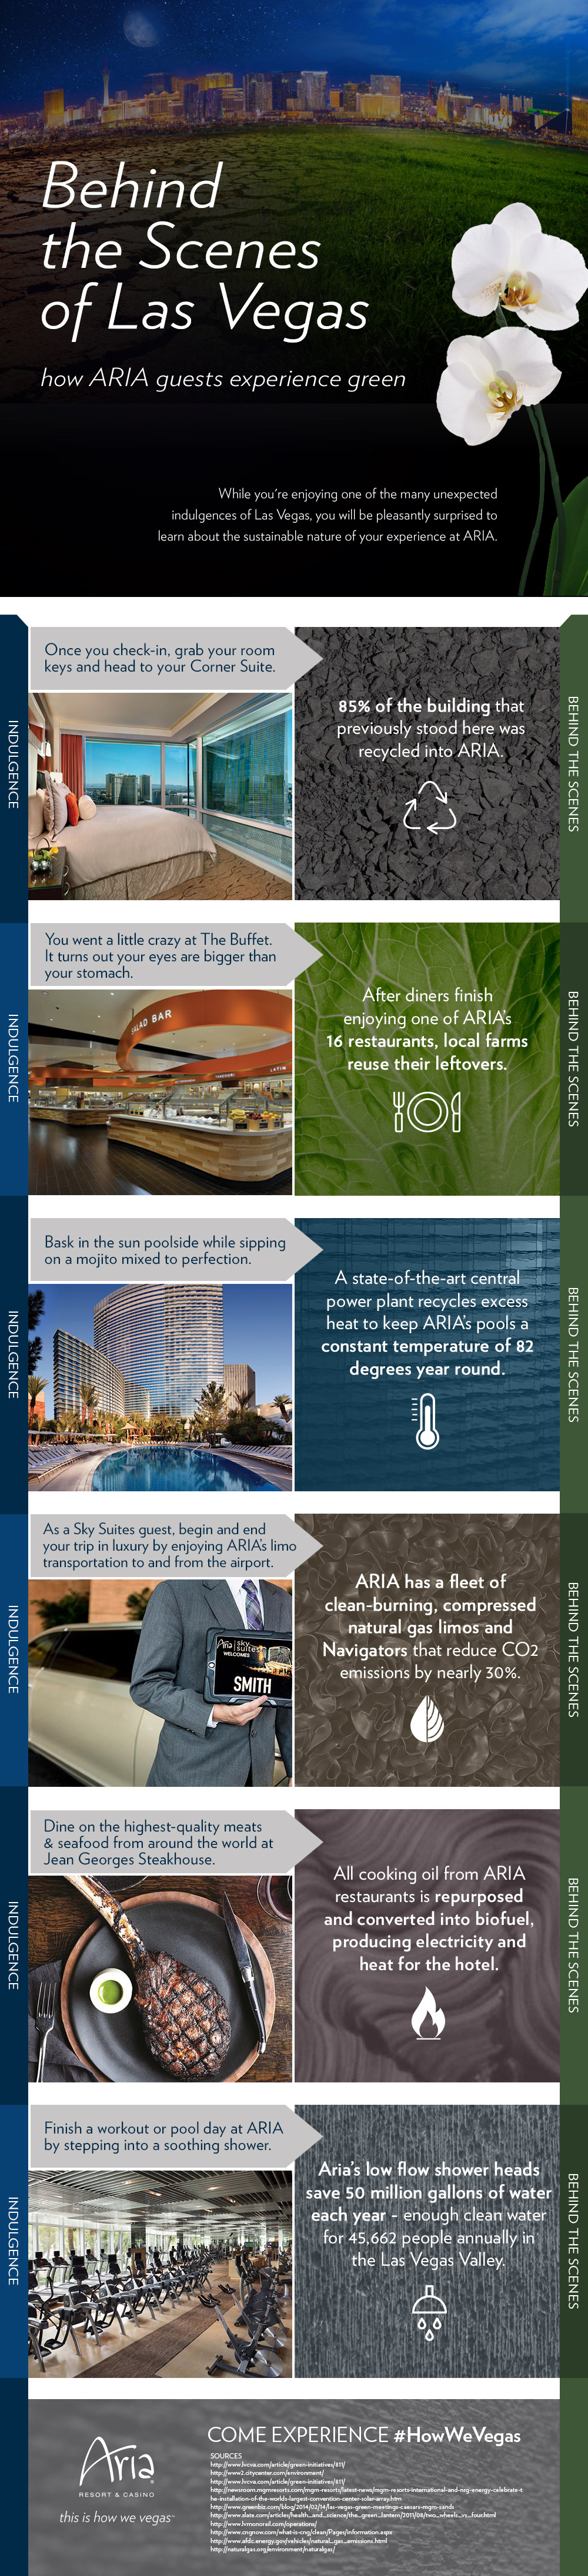 LEED Certified Sustainability in Las Vegas infographic